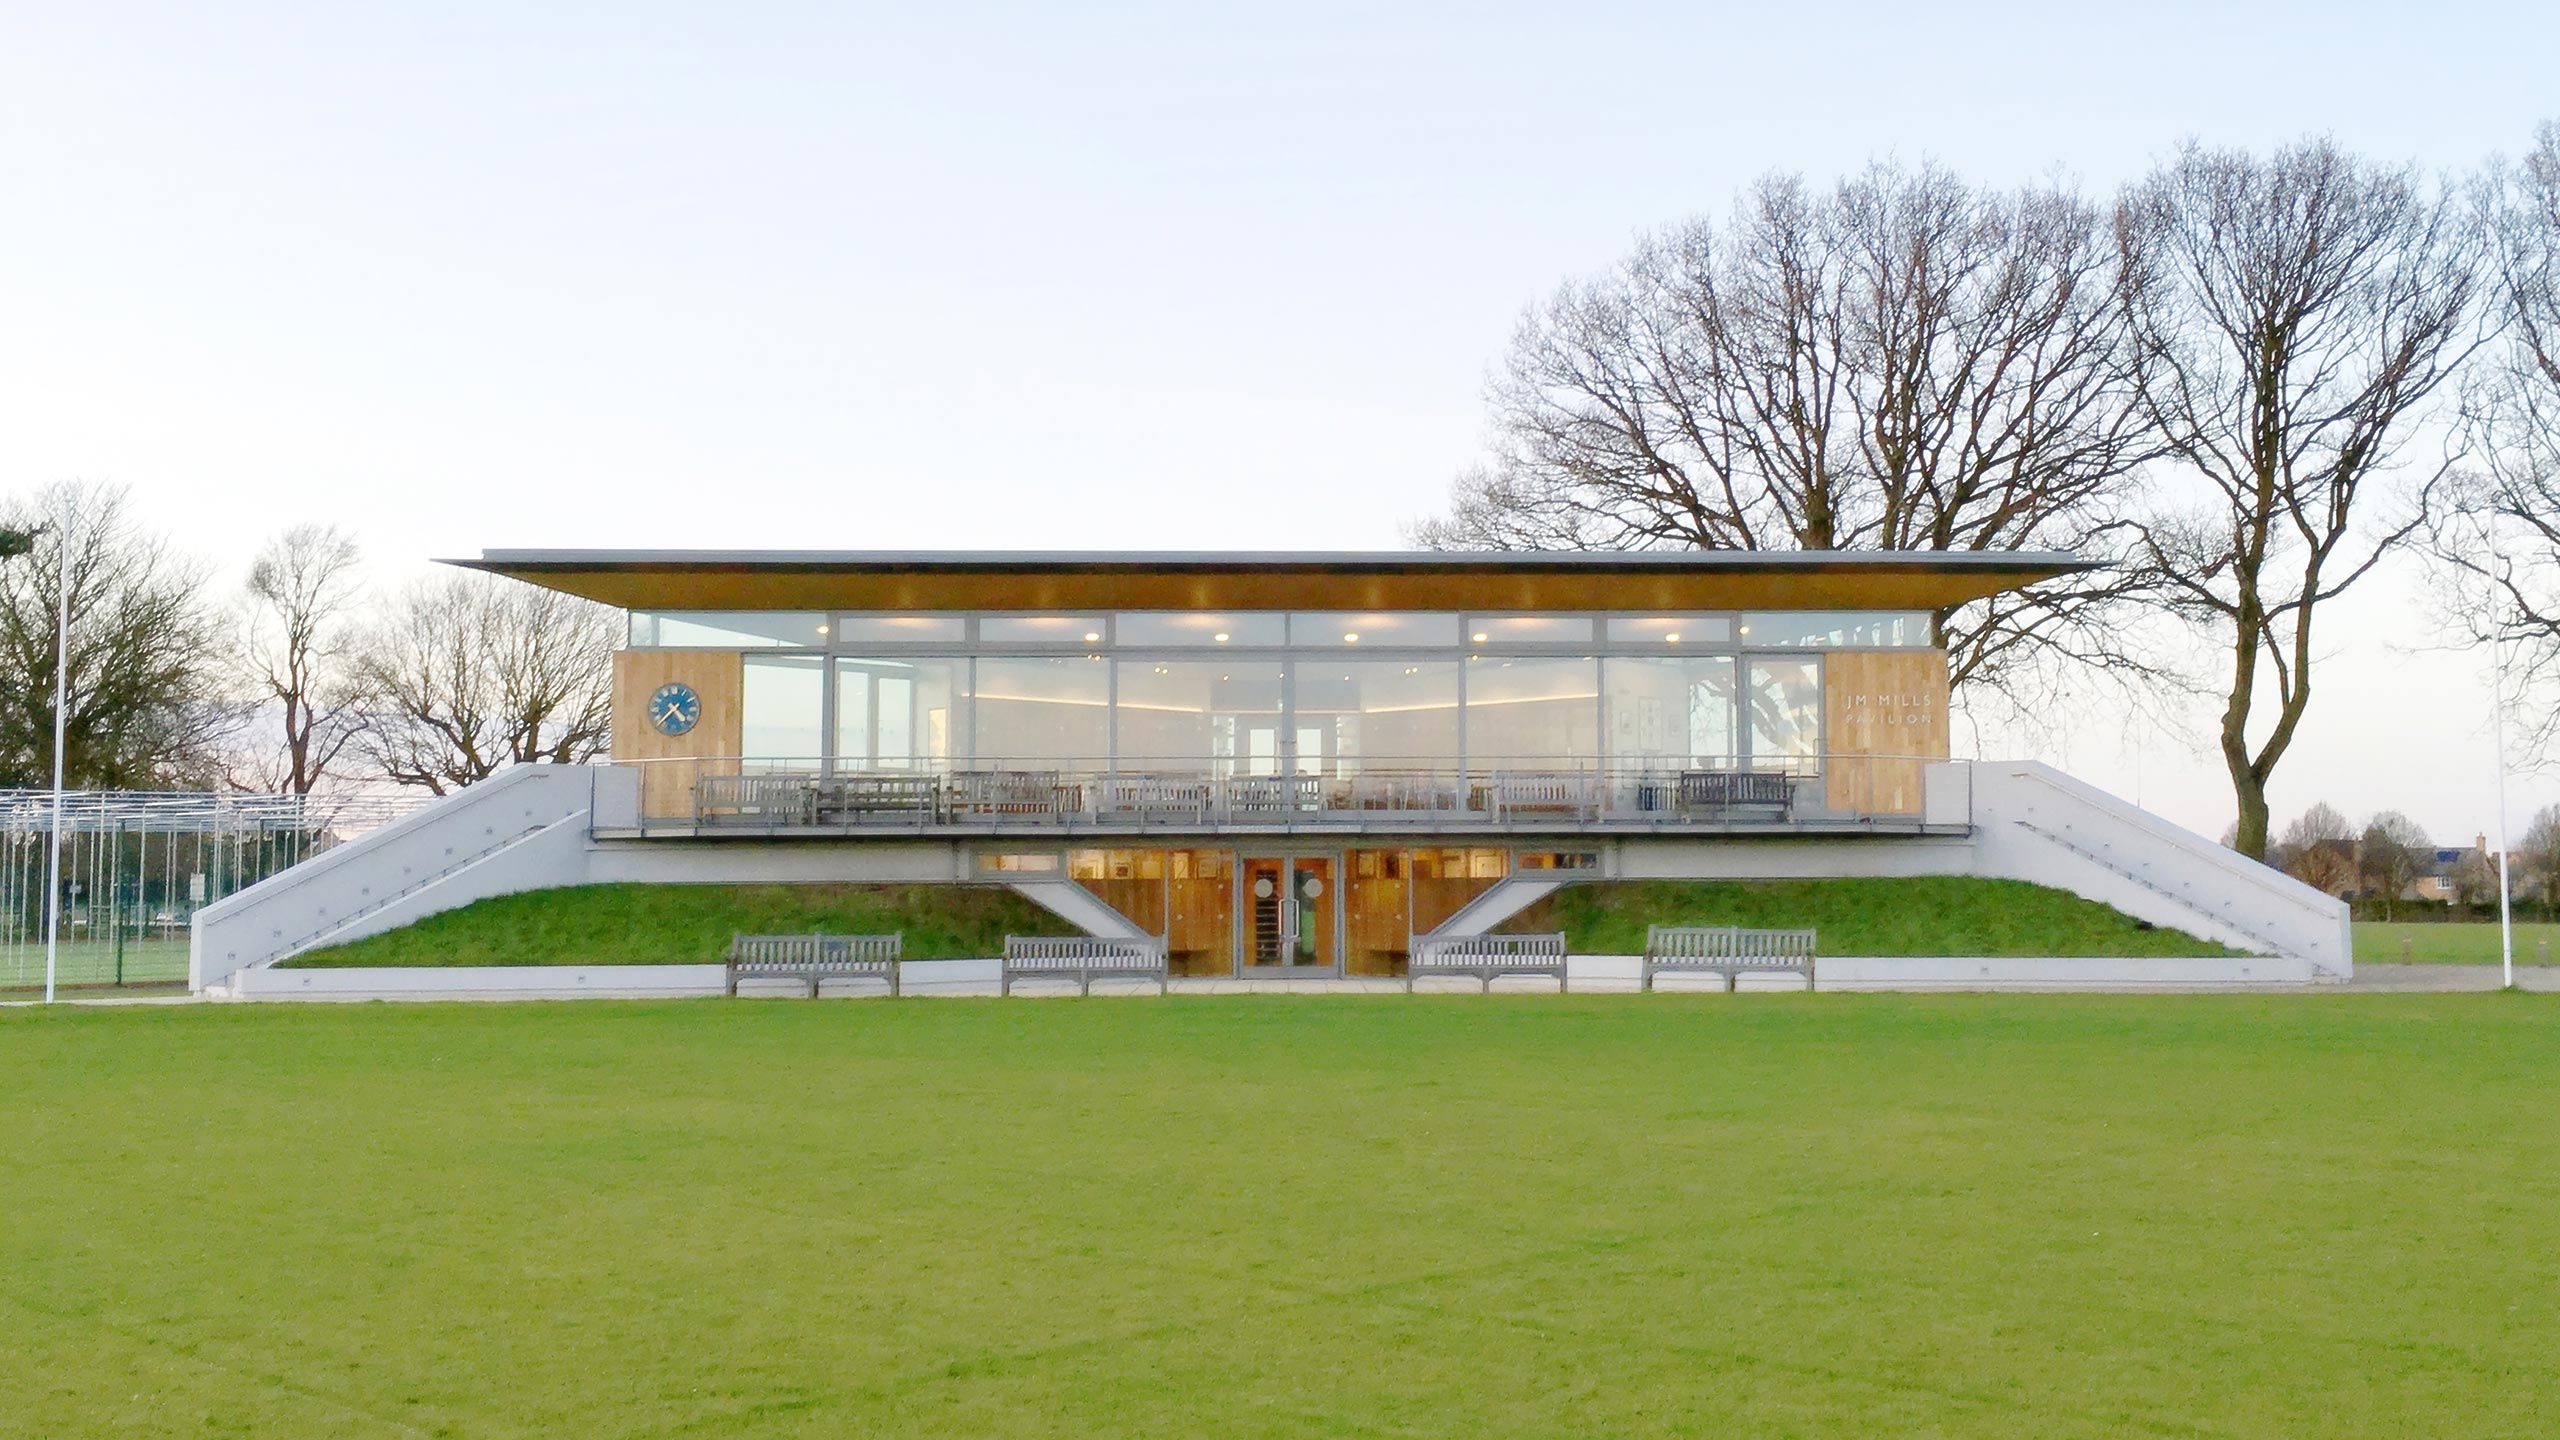 When A Pre Tender Estimate Of Around 800 000 To Repair And Refurbish Their Existing Cricket Pavilion Attracted Pavilion Design Outdoor Paving Pavillion Design